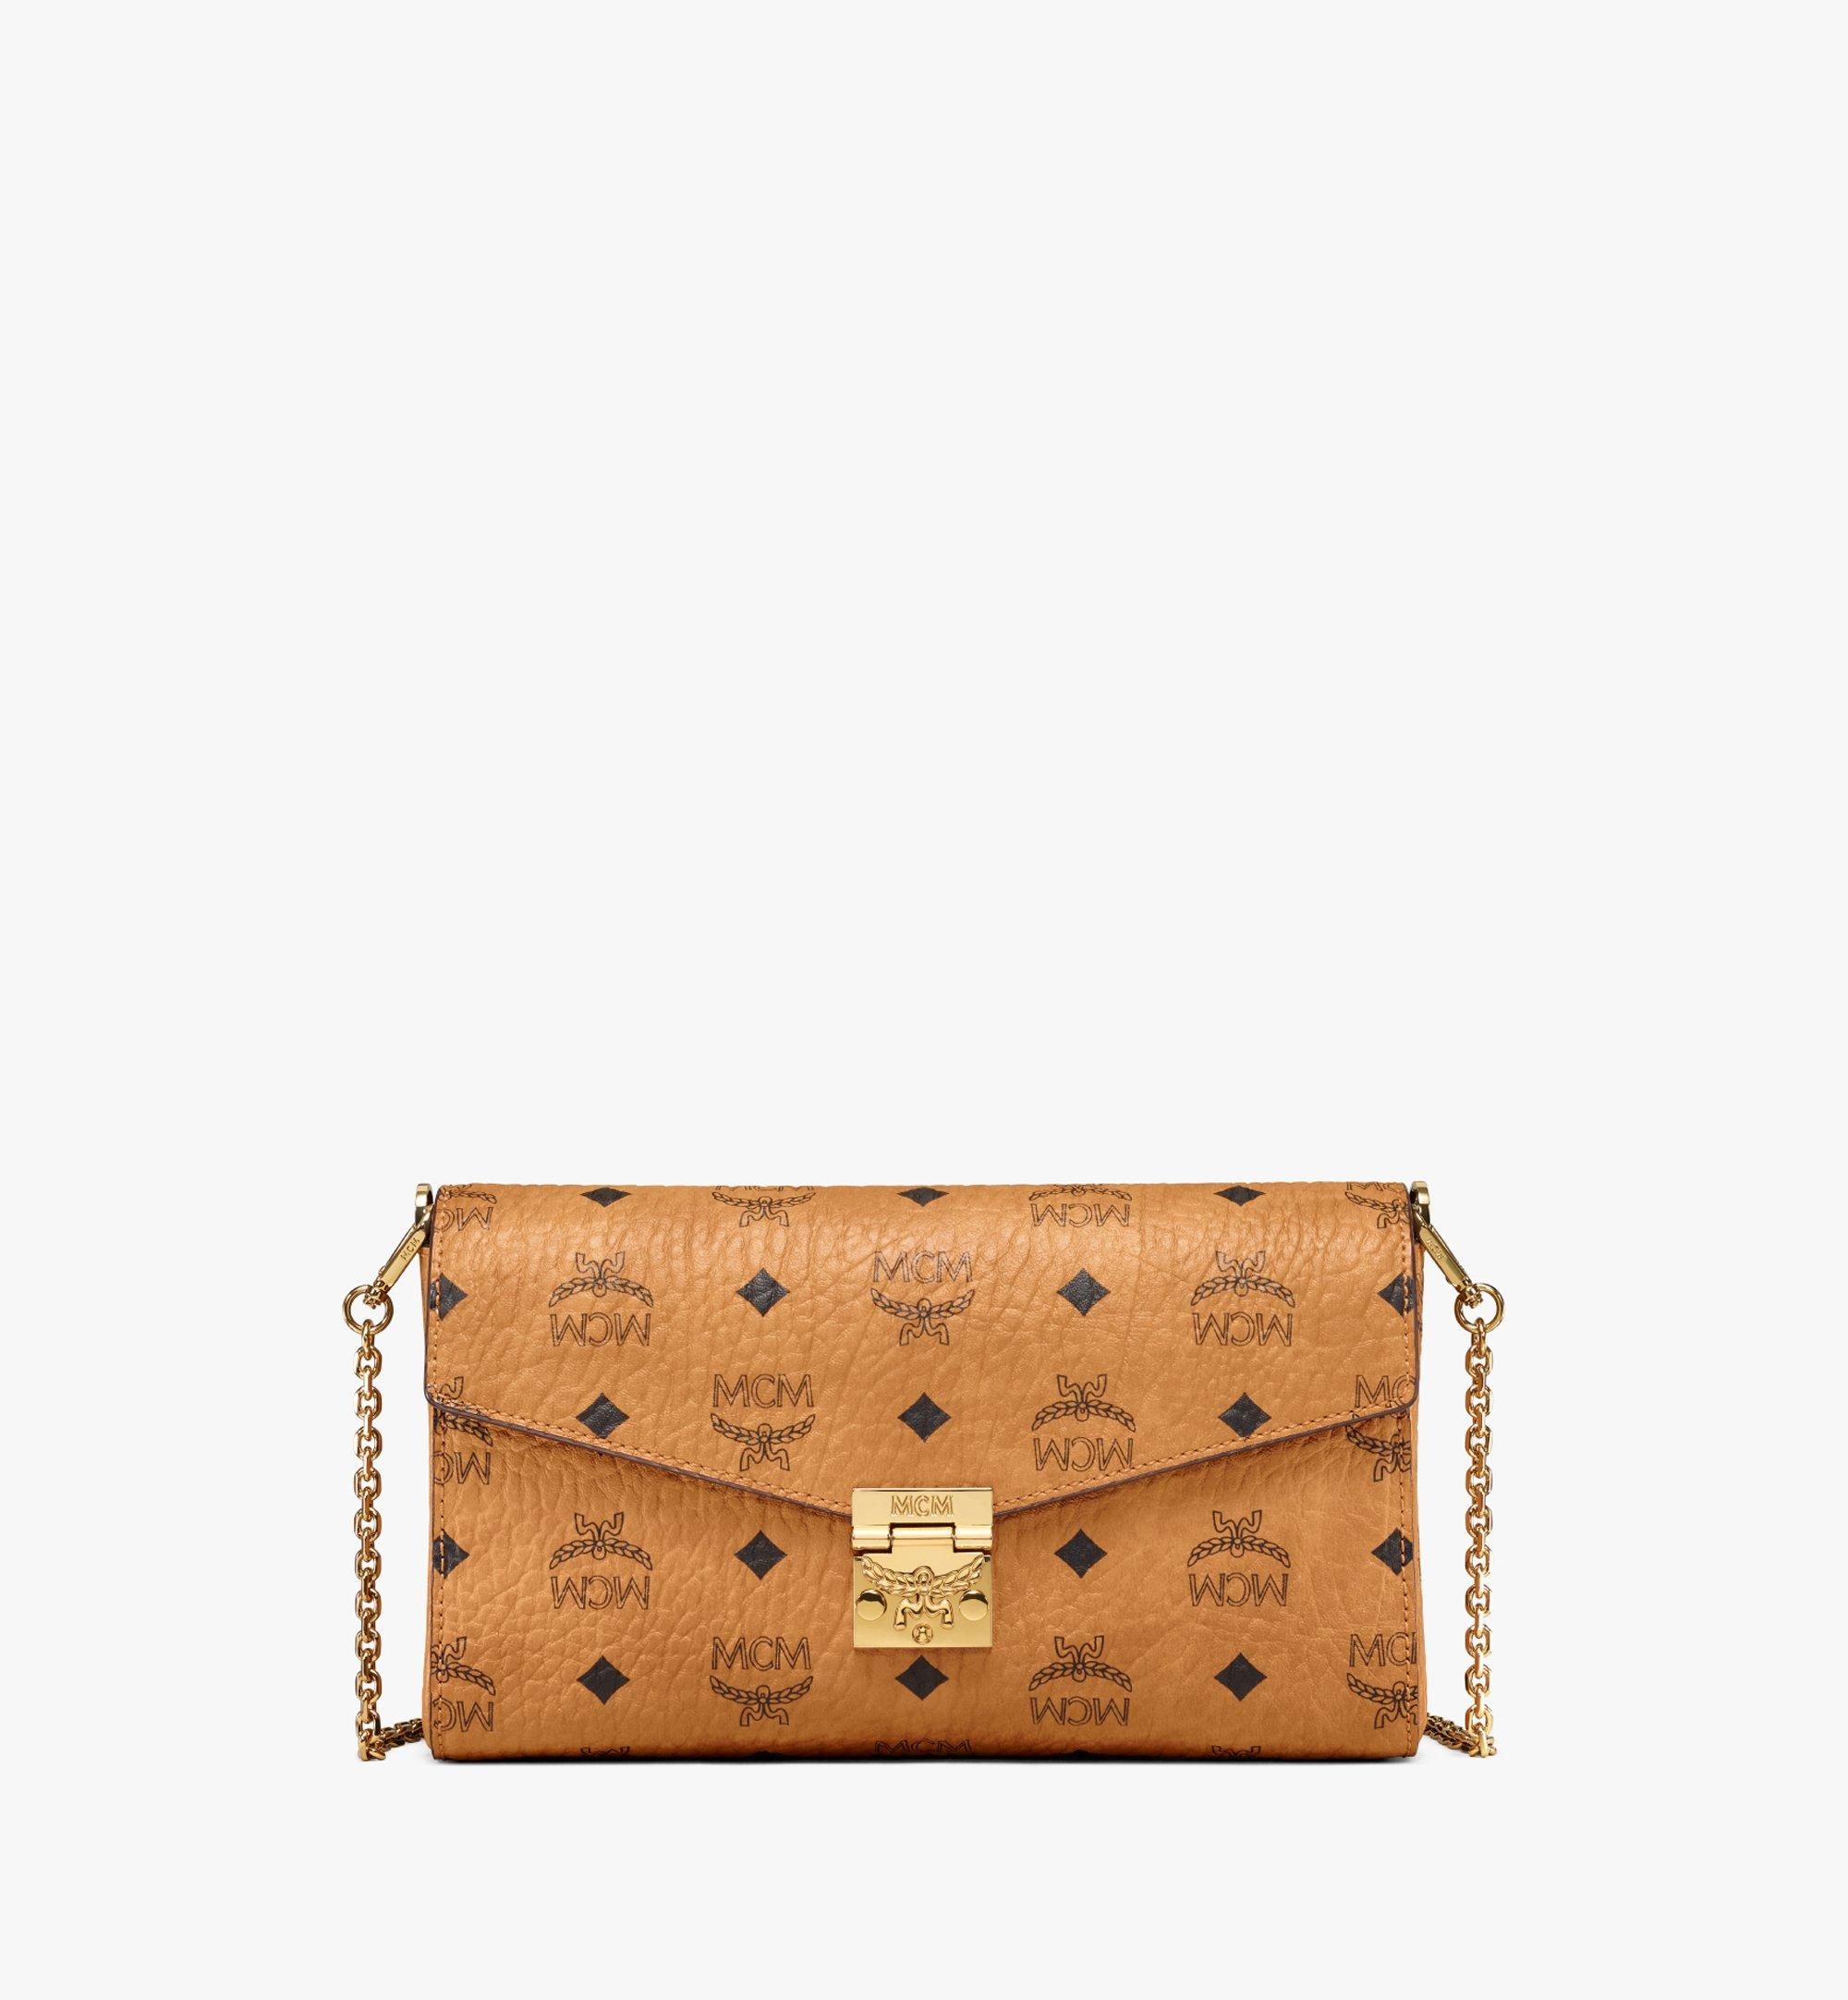 Medium Millie Flap Crossbody Tasche in Visetos Cognac | MCM® DE